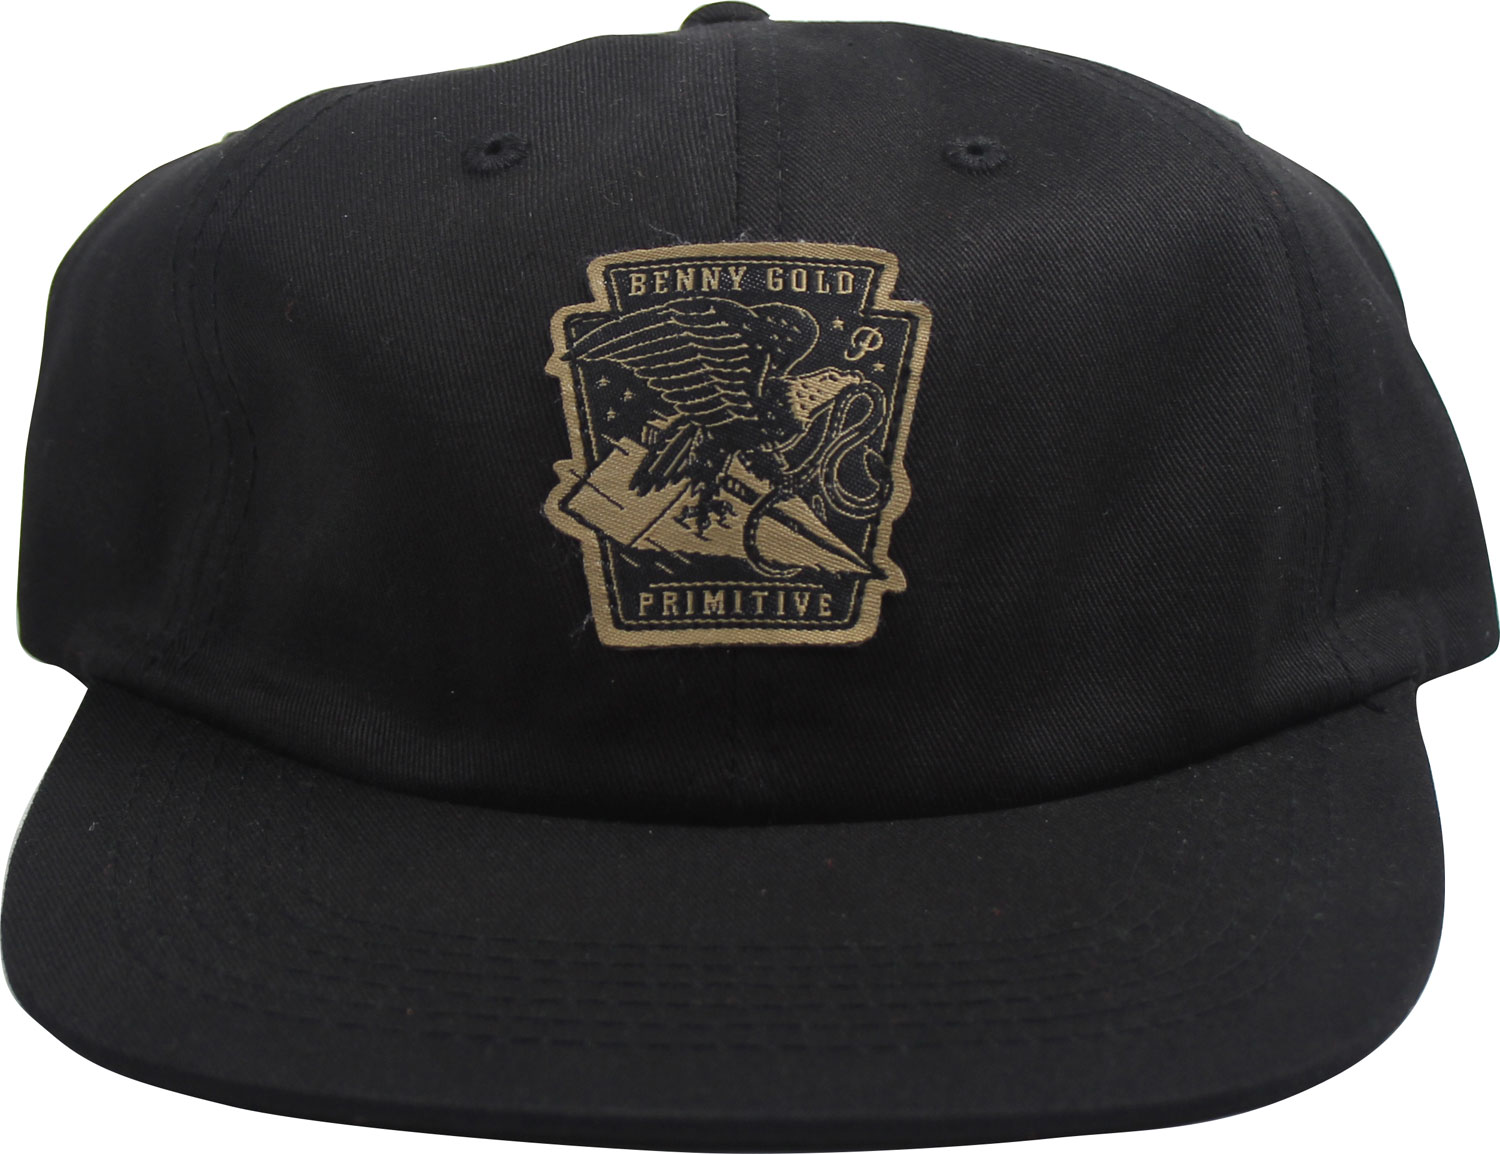 Benny Gold X Primitive Eagle Polo Hat 992255f62f6